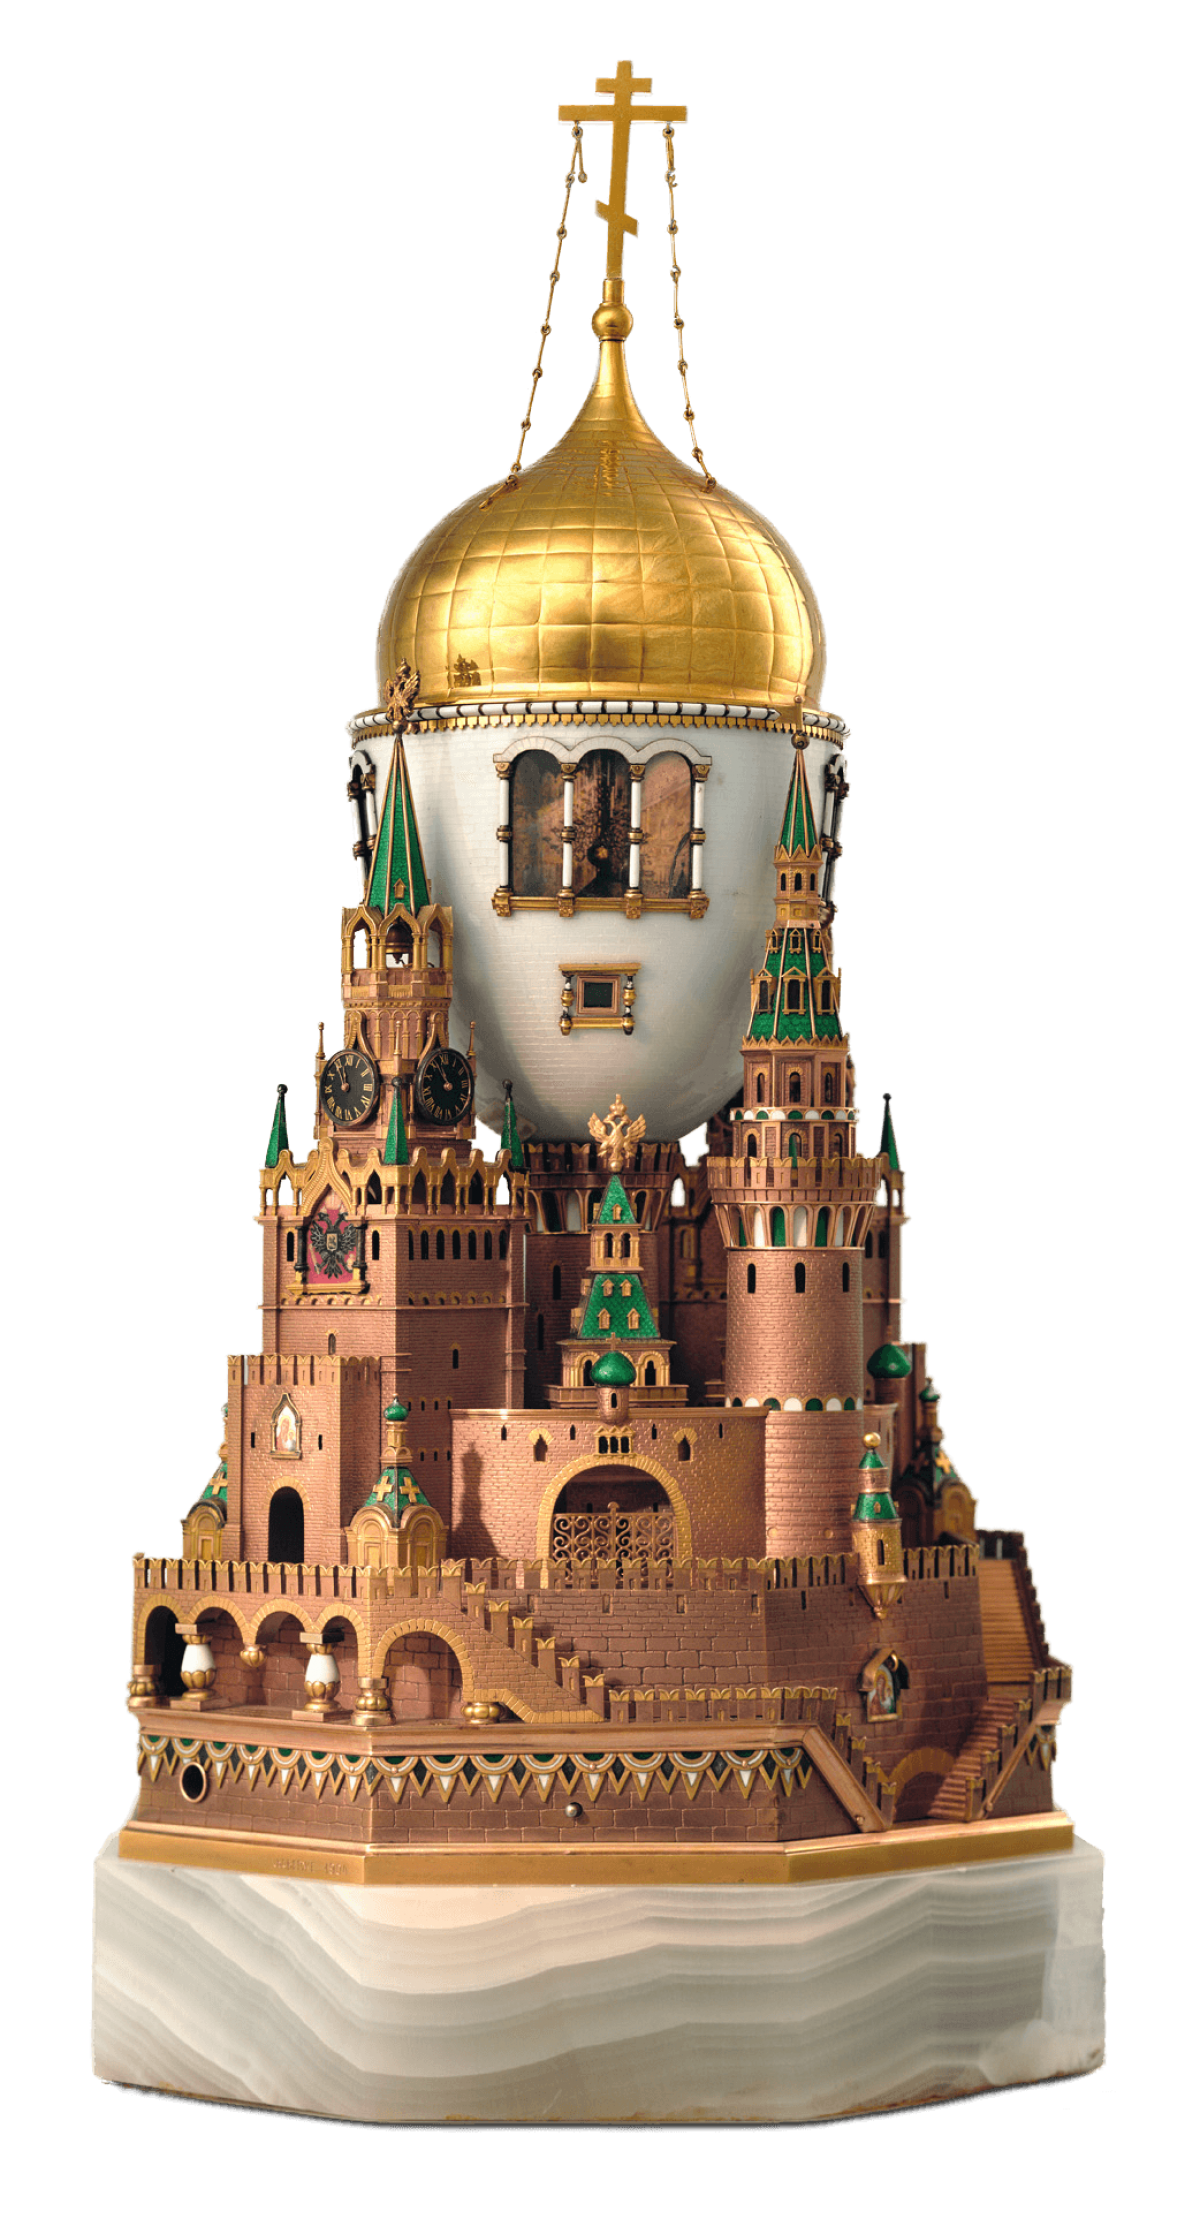 The Moscow Kremlin Egg Peter Carl Faberg 233 Trivium Art